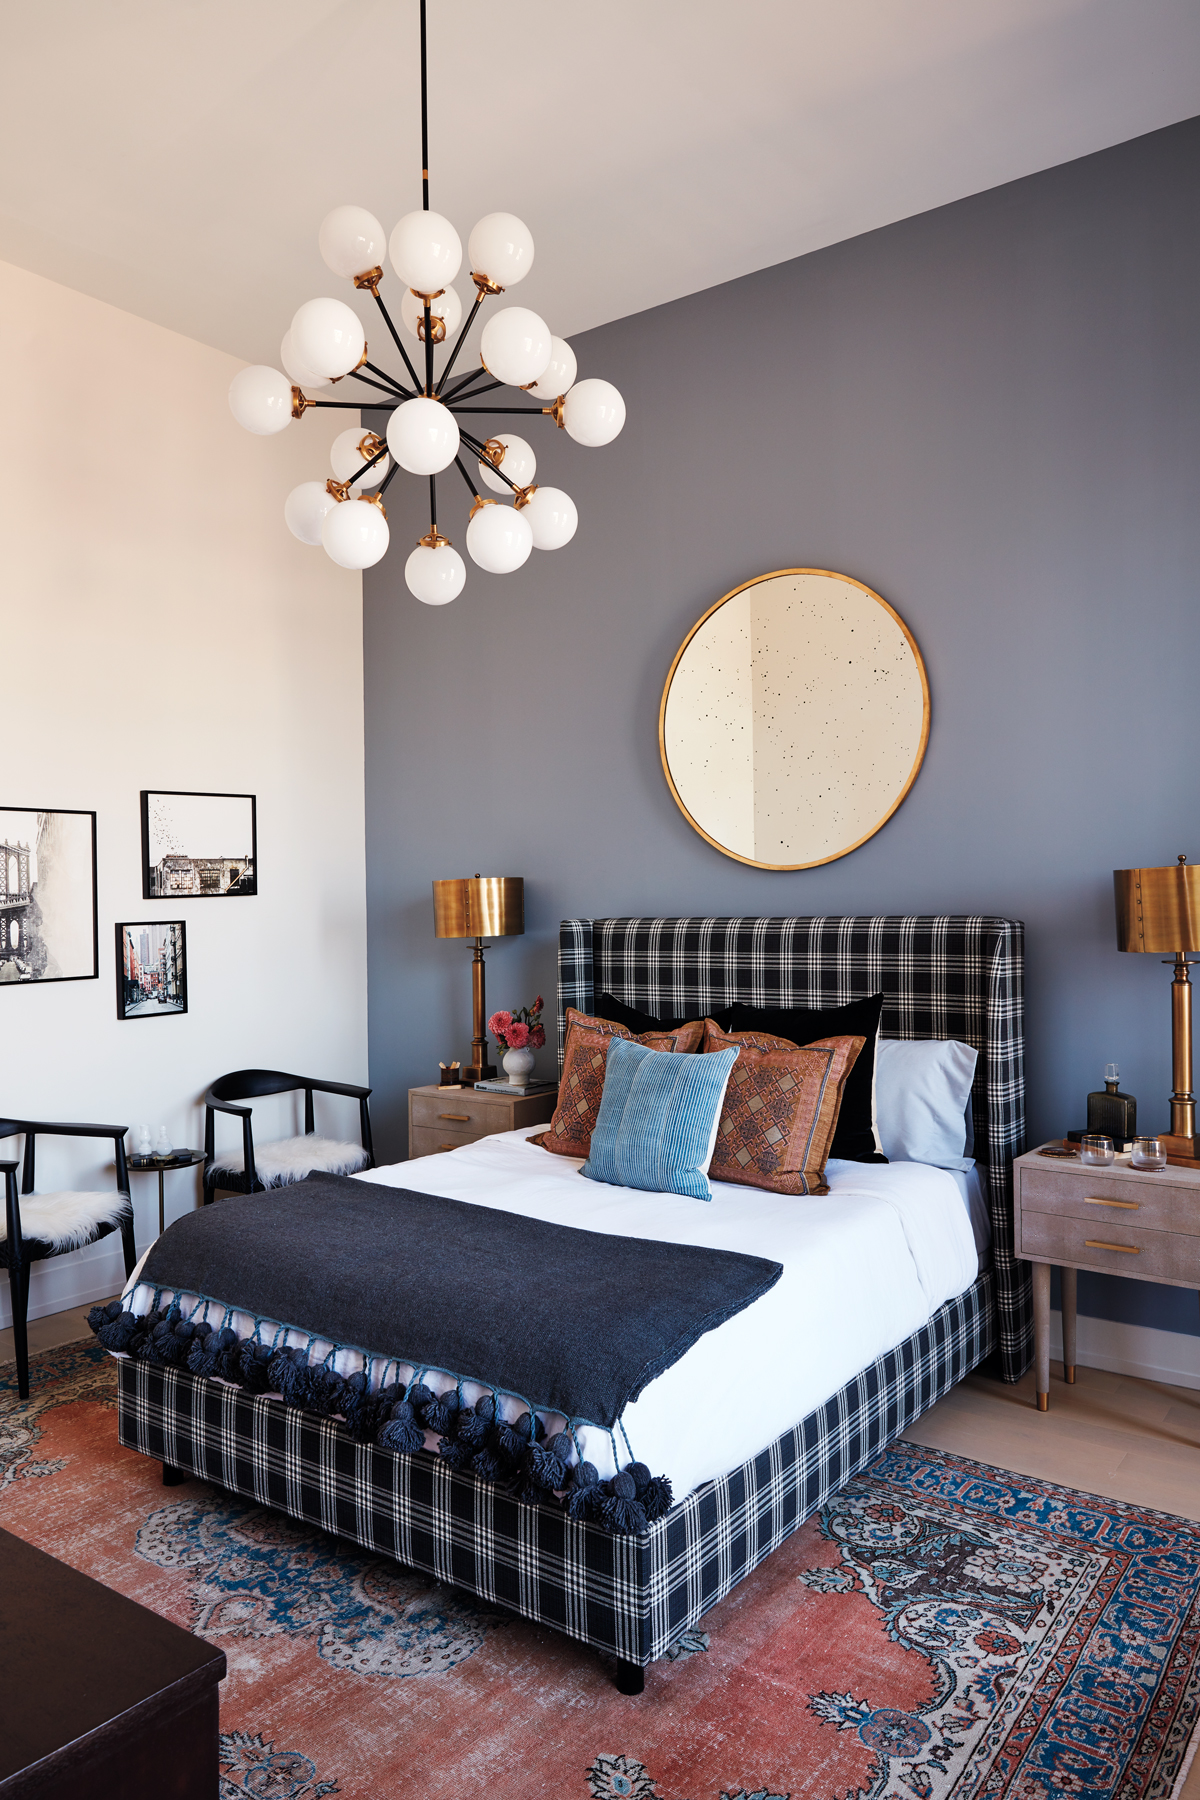 Bedroom Ideas Real Simple 5 ways to make your home look more expensive for less than $100